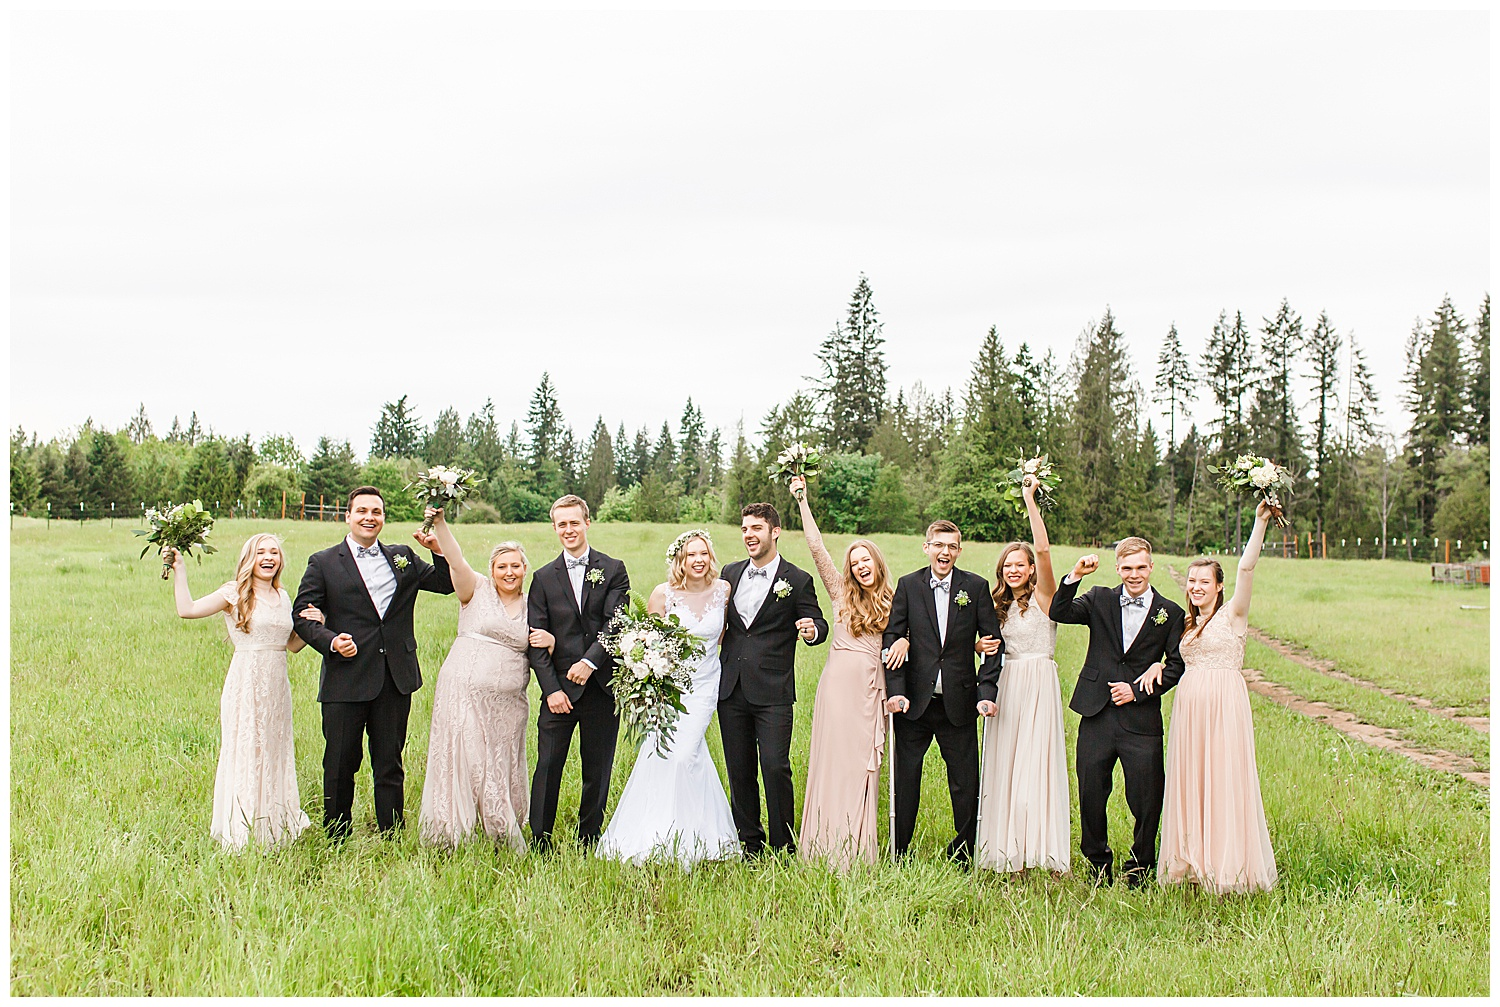 Brush_Prairie_Washington_Wedding_May_Farm_Backyard_Family_Photographer_Conzatti_0026.jpg